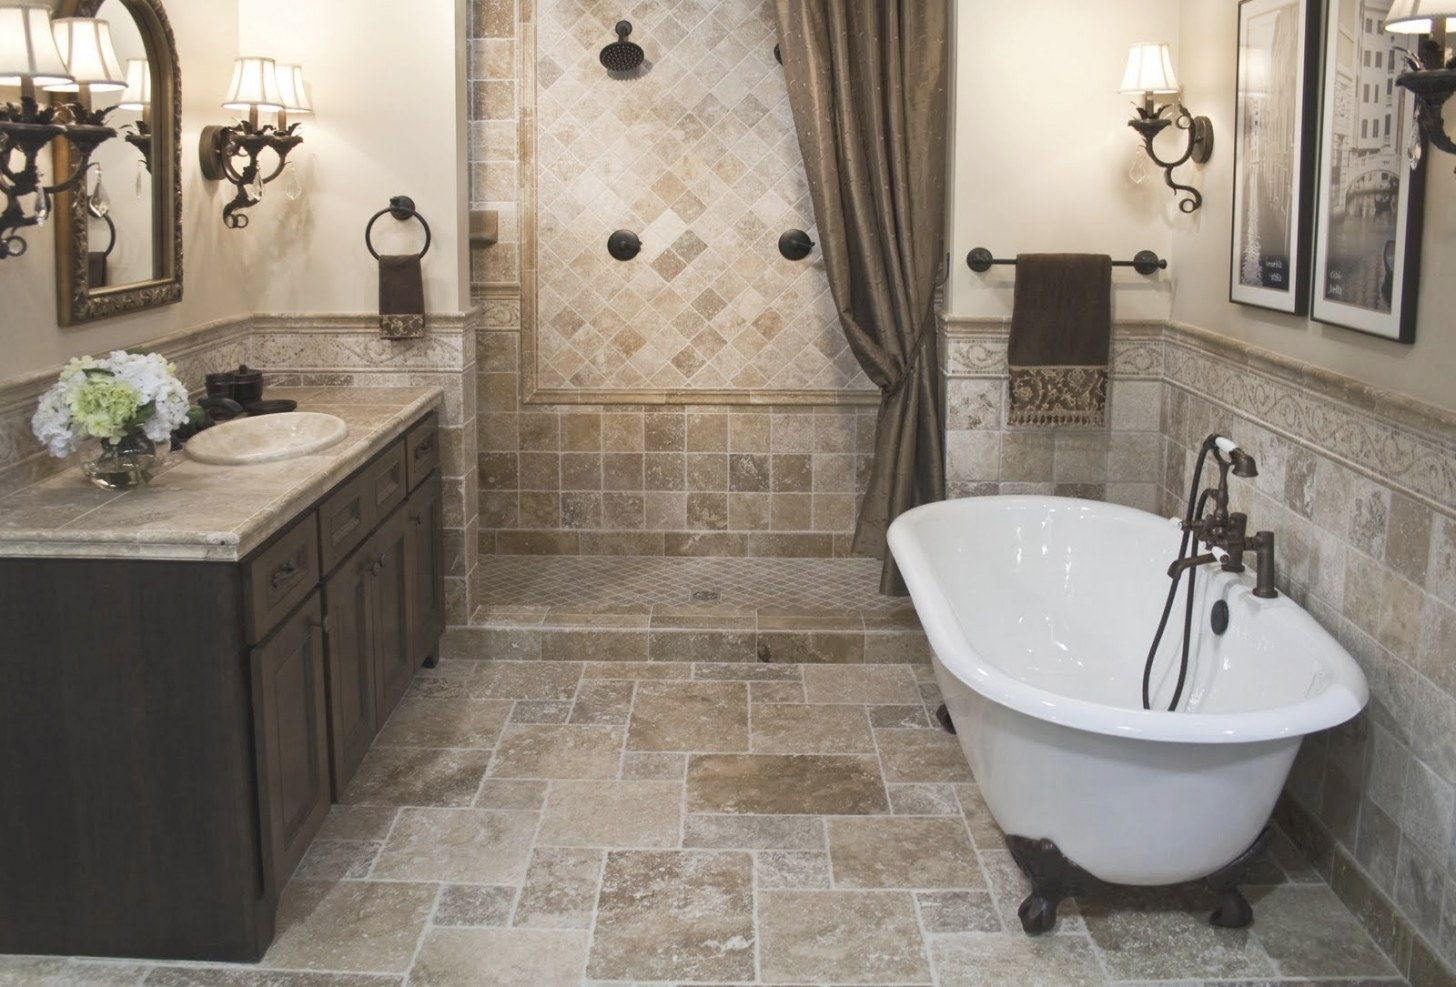 The Top 20 Small Bathroom Design Ideas For 2014 - Qnud for Bathtub Designs For Small Bathrooms